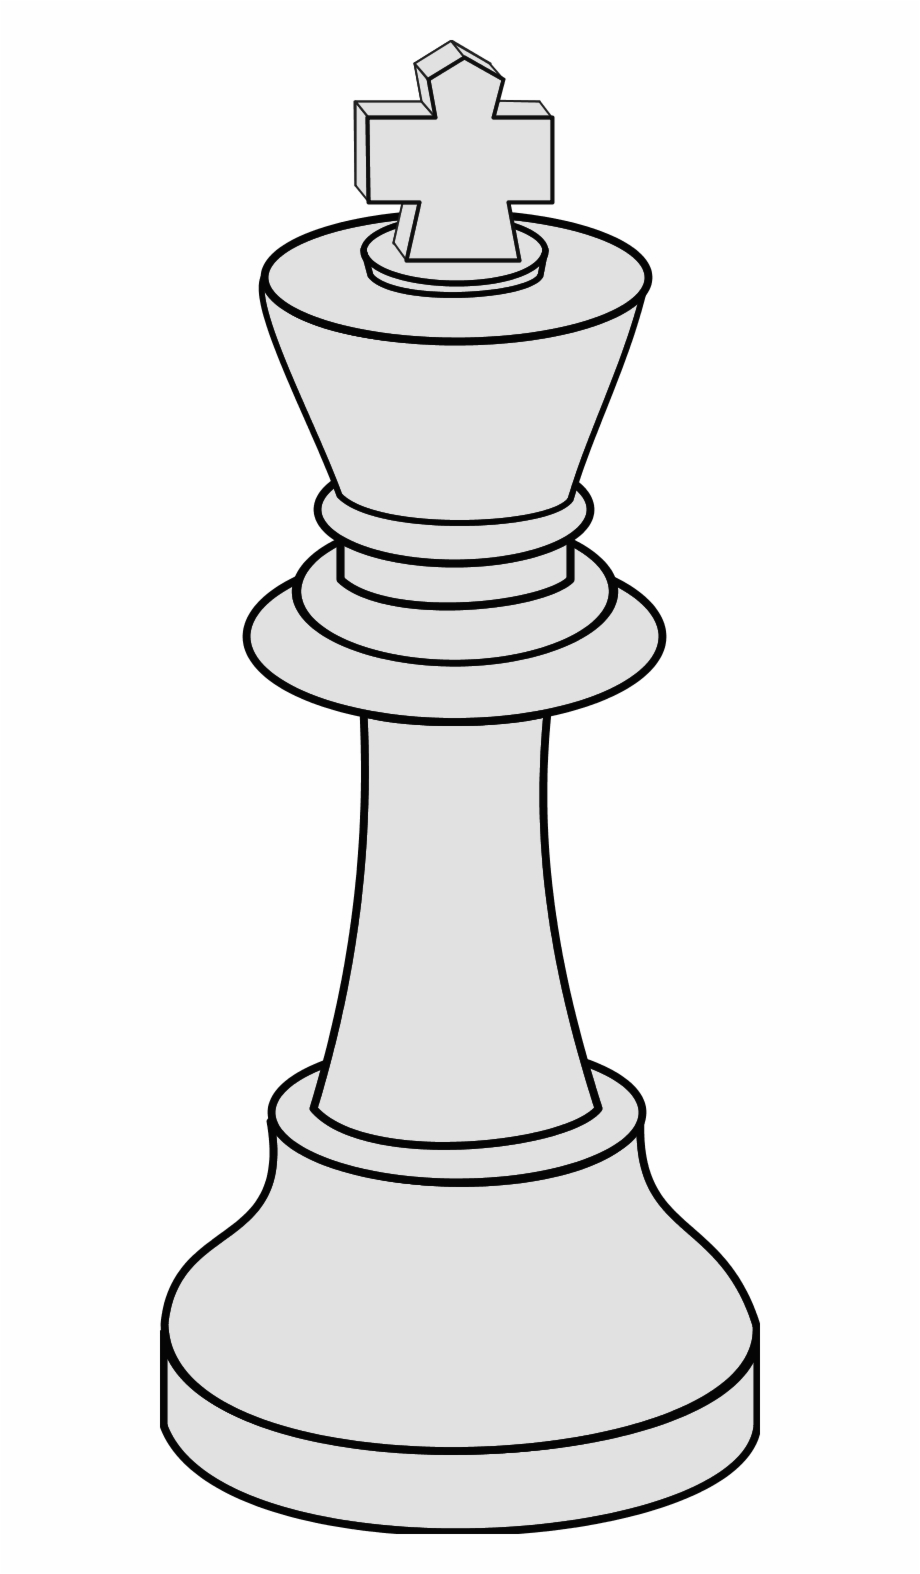 Free King Chess Piece Png, Download Free Clip Art, Free Clip.